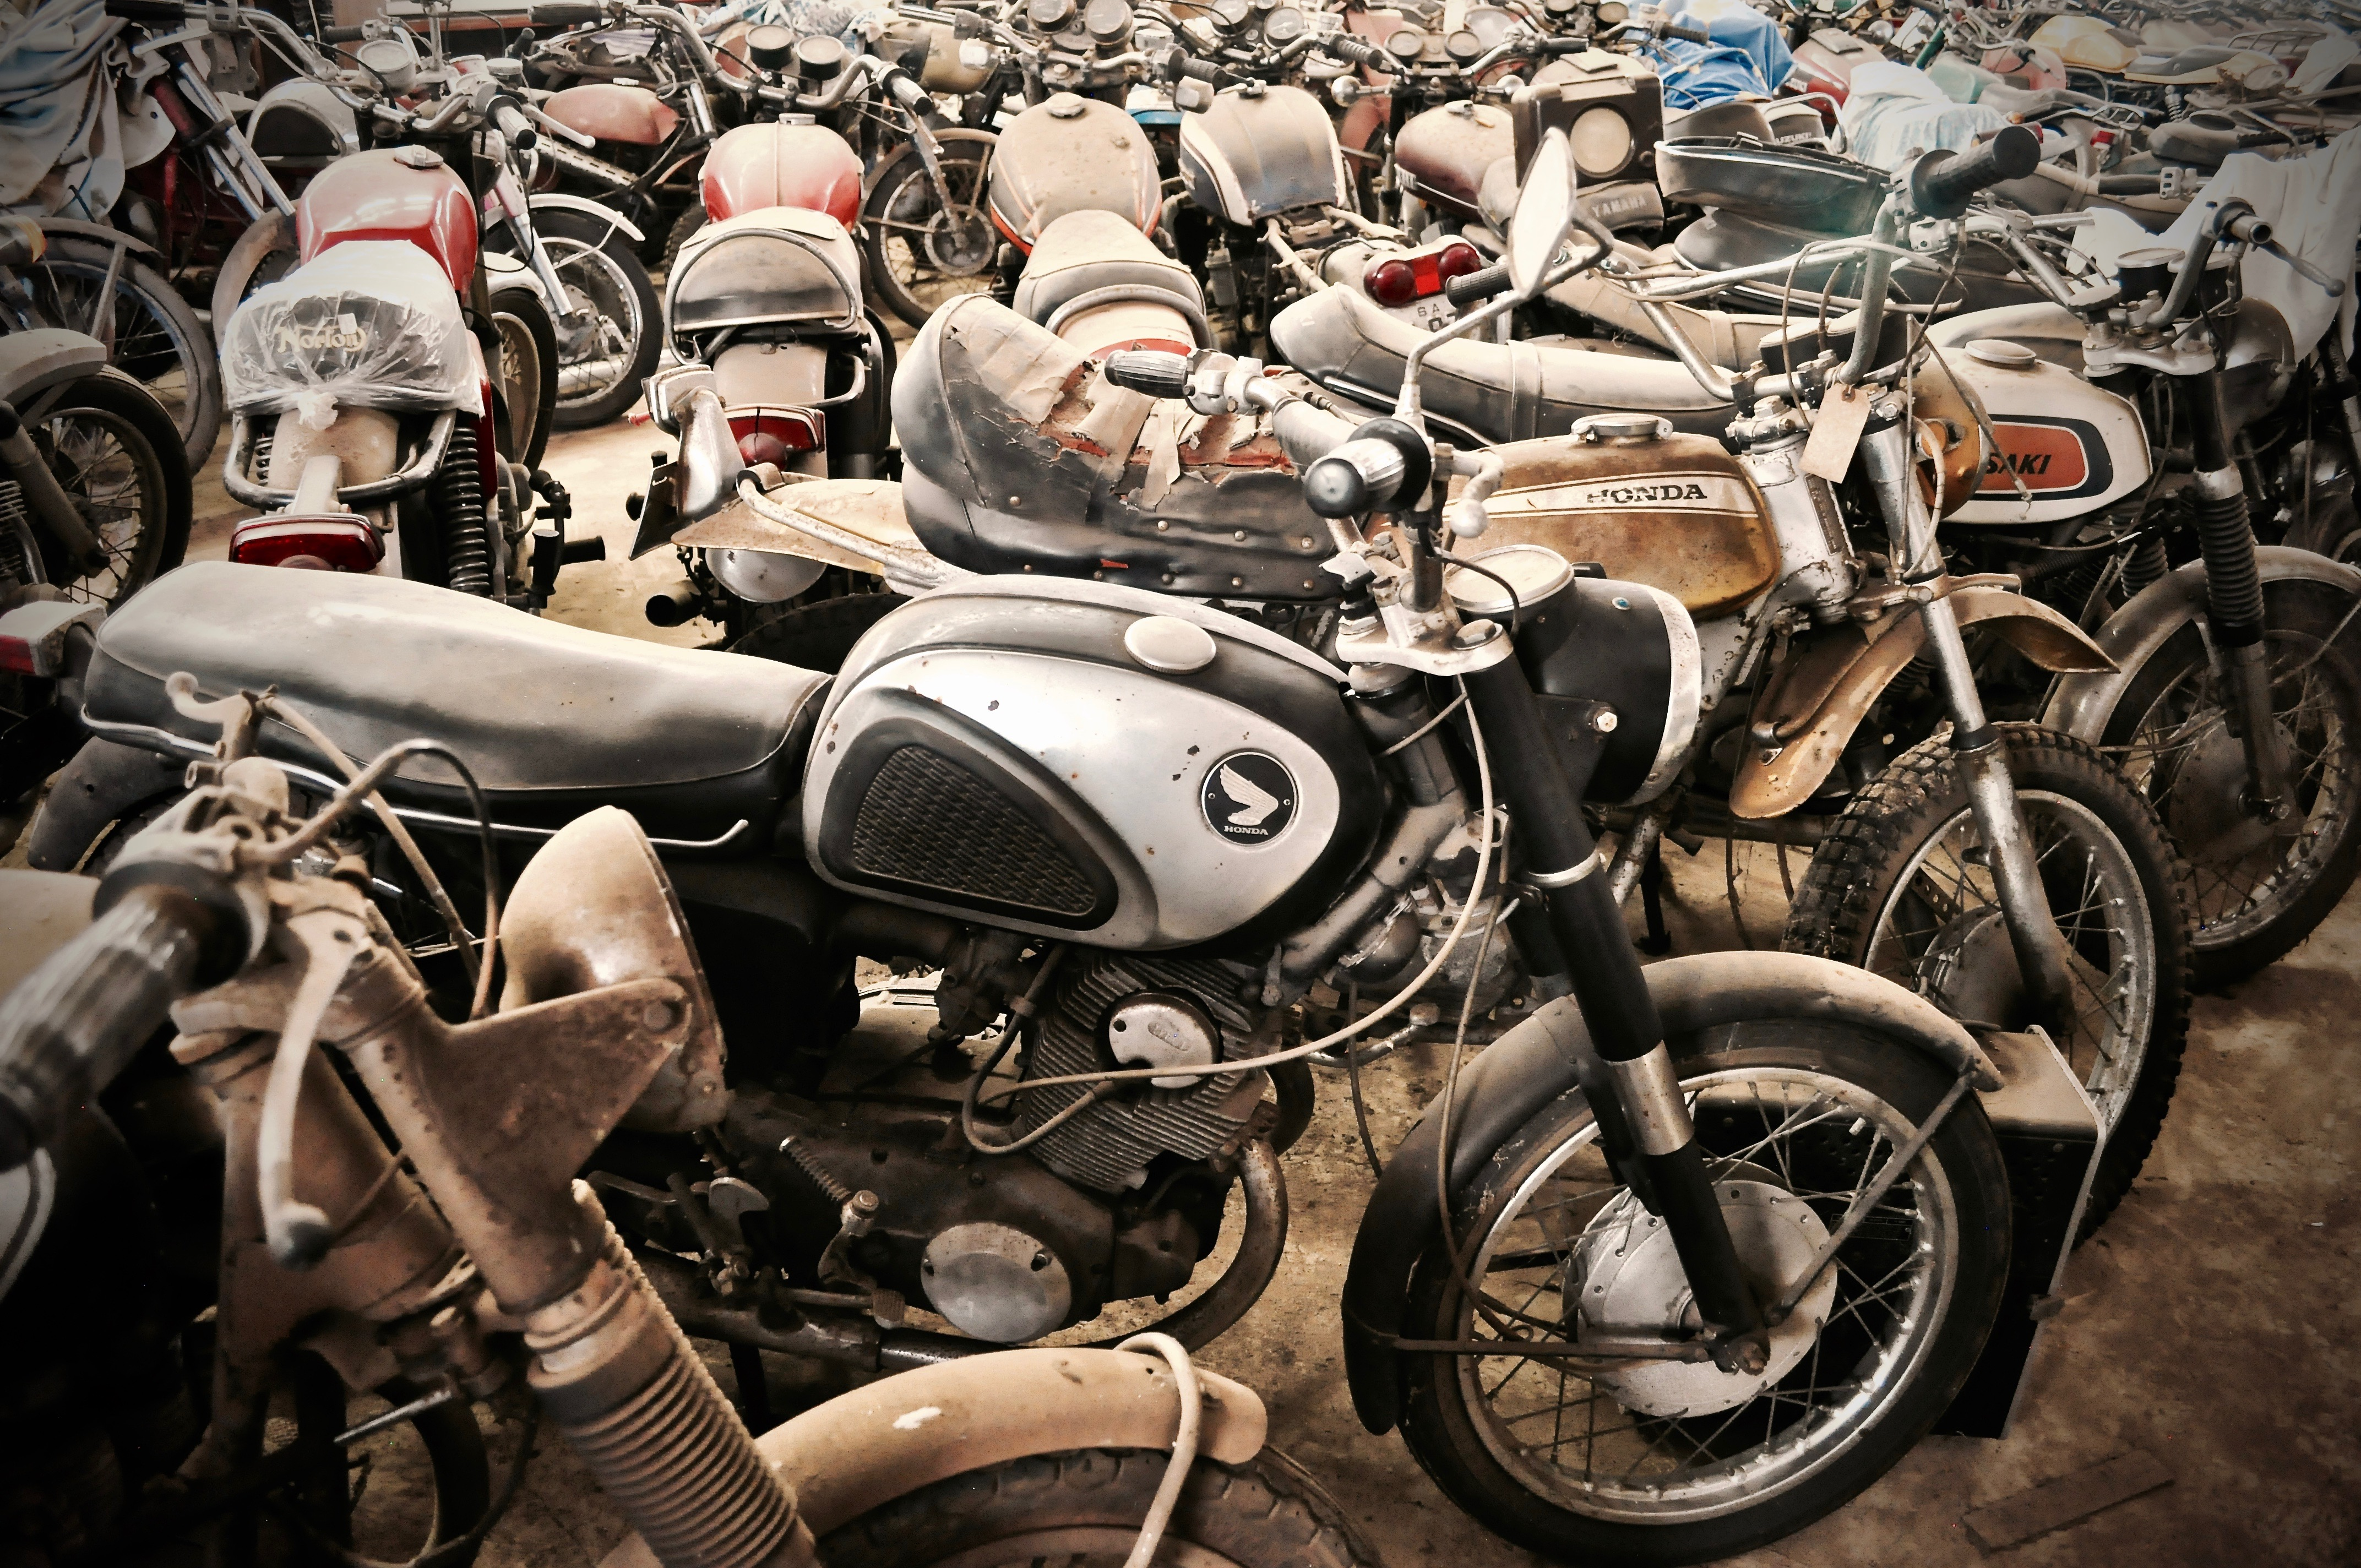 The man they call Toad, and his lifetime collection of bikes